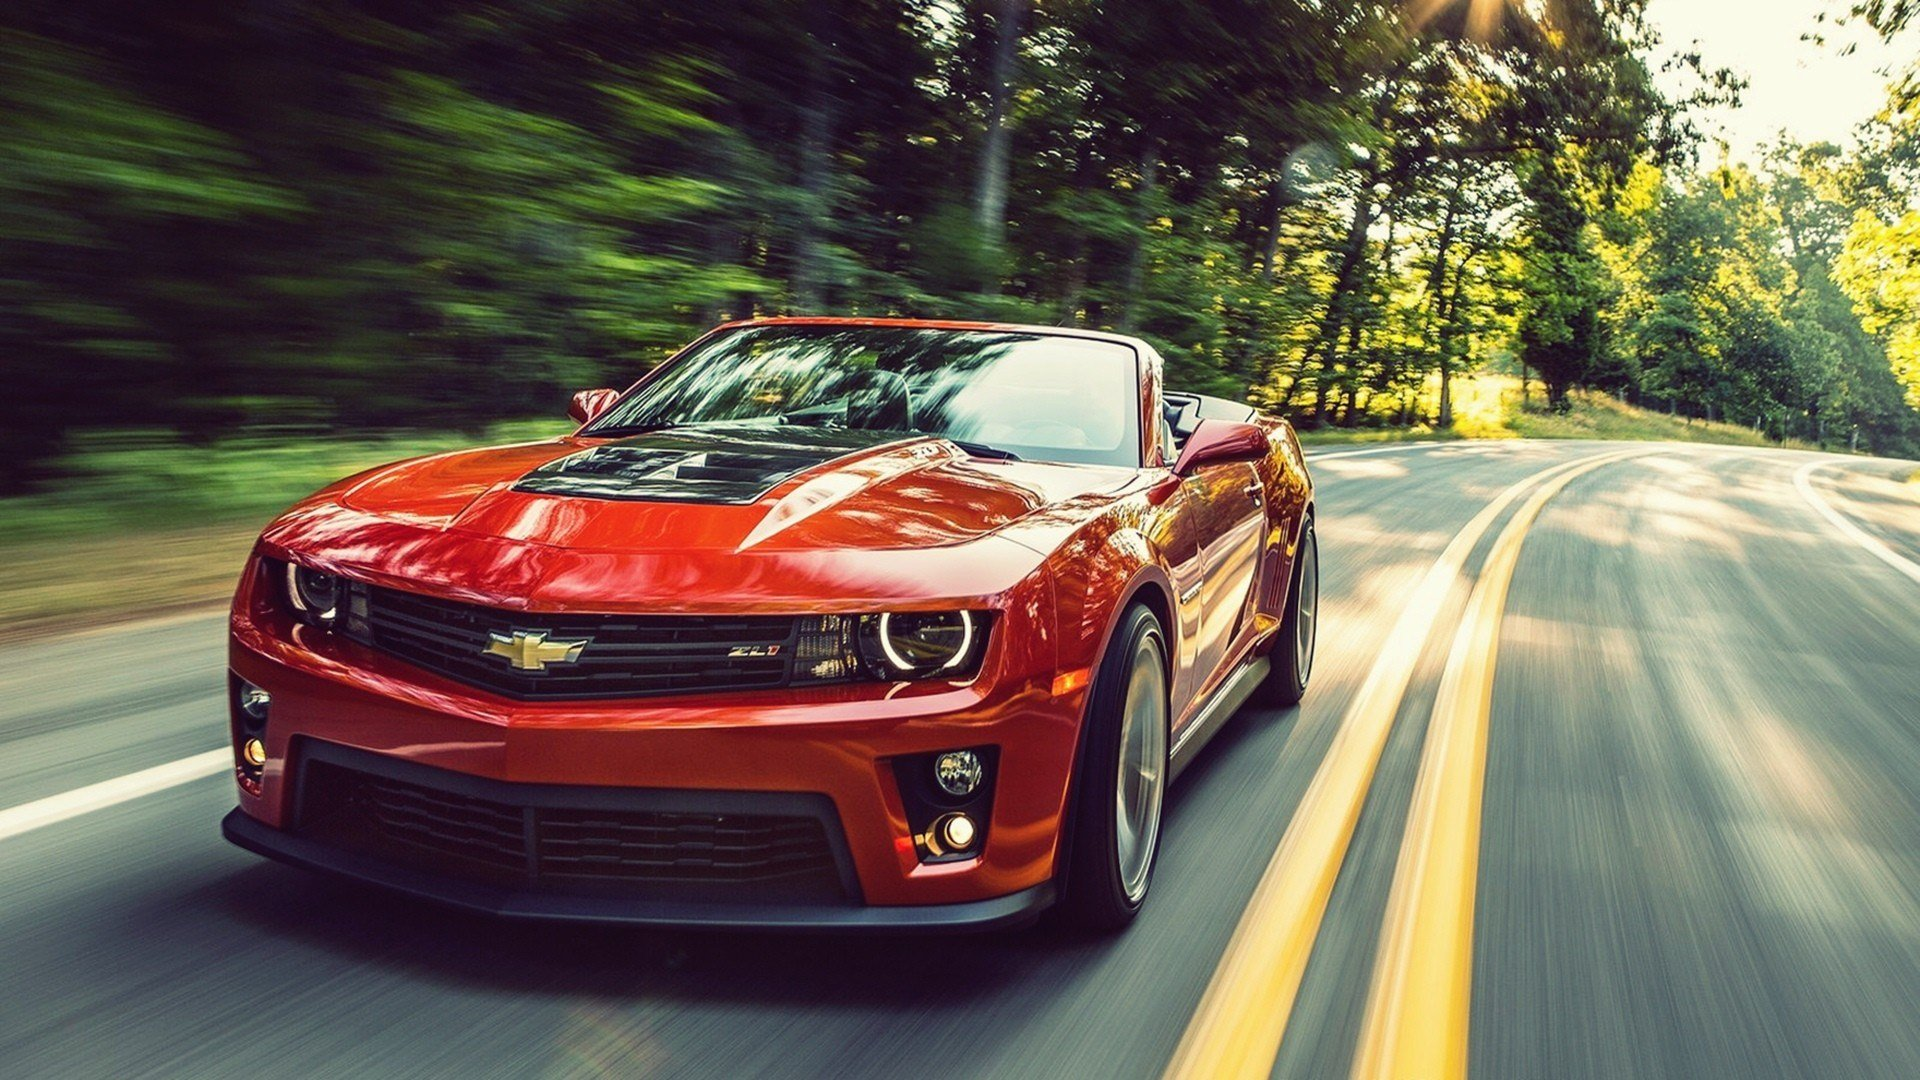 New 28 Chevrolet Camaro Zl1 Hd Wallpapers Backgrounds On This Month